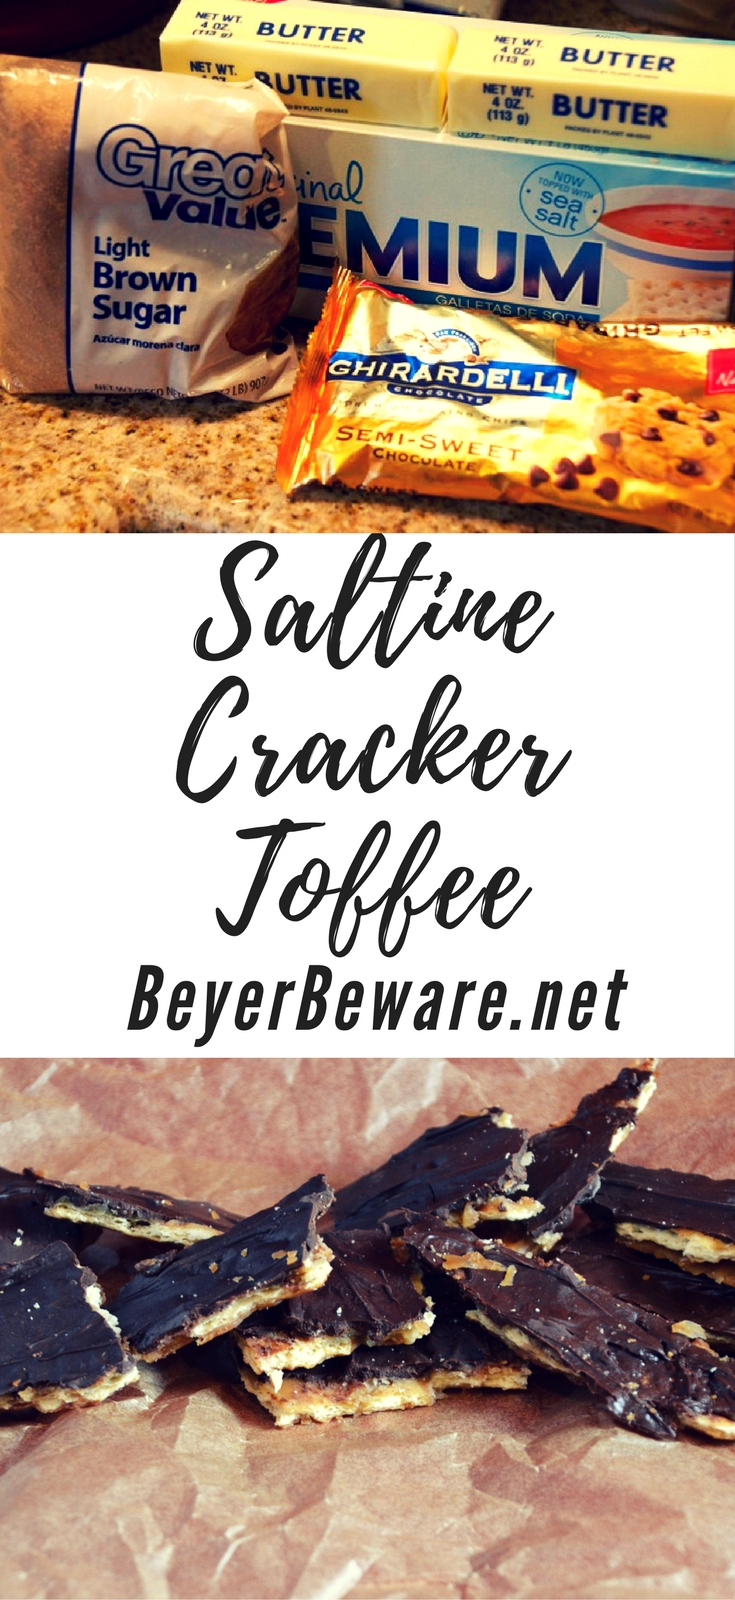 Saltine cracker toffee is a four-ingredient candy recipe that is easy to make with saltine crackers, butter, brown sugar, and chocolate chips and baked quickly before being broken into pieces. #Toffee #ChristmasCrack #Candy #EasyRecipes #Treats #Snacks #Dessert